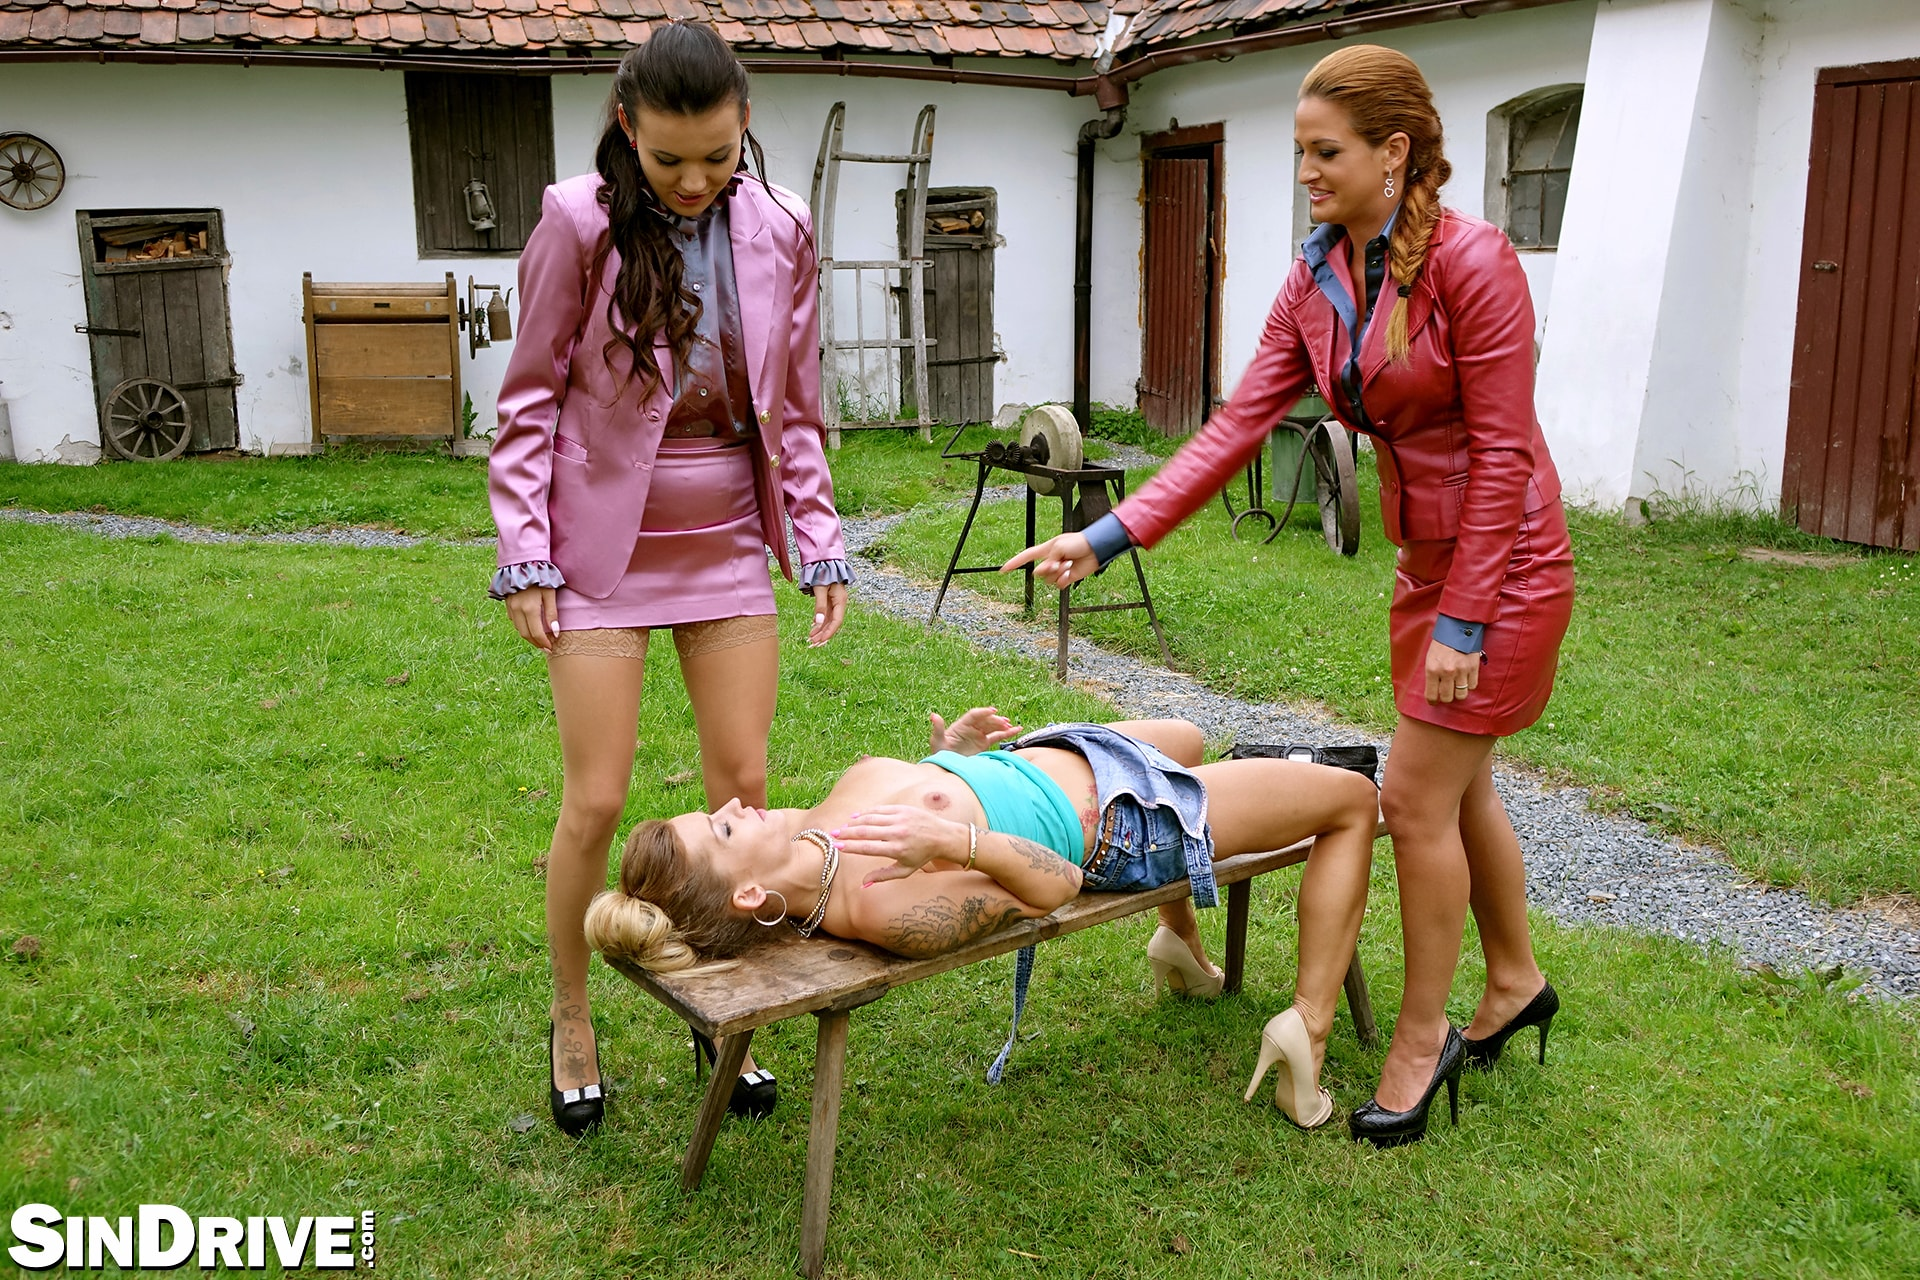 Sindrive 'Bitch Better Lick My Pussy! 2 Lady Bosses Get Their Piss Freak On and A Casual Chick Is In Danger :-)' starring Nicole Vice (Photo 1)